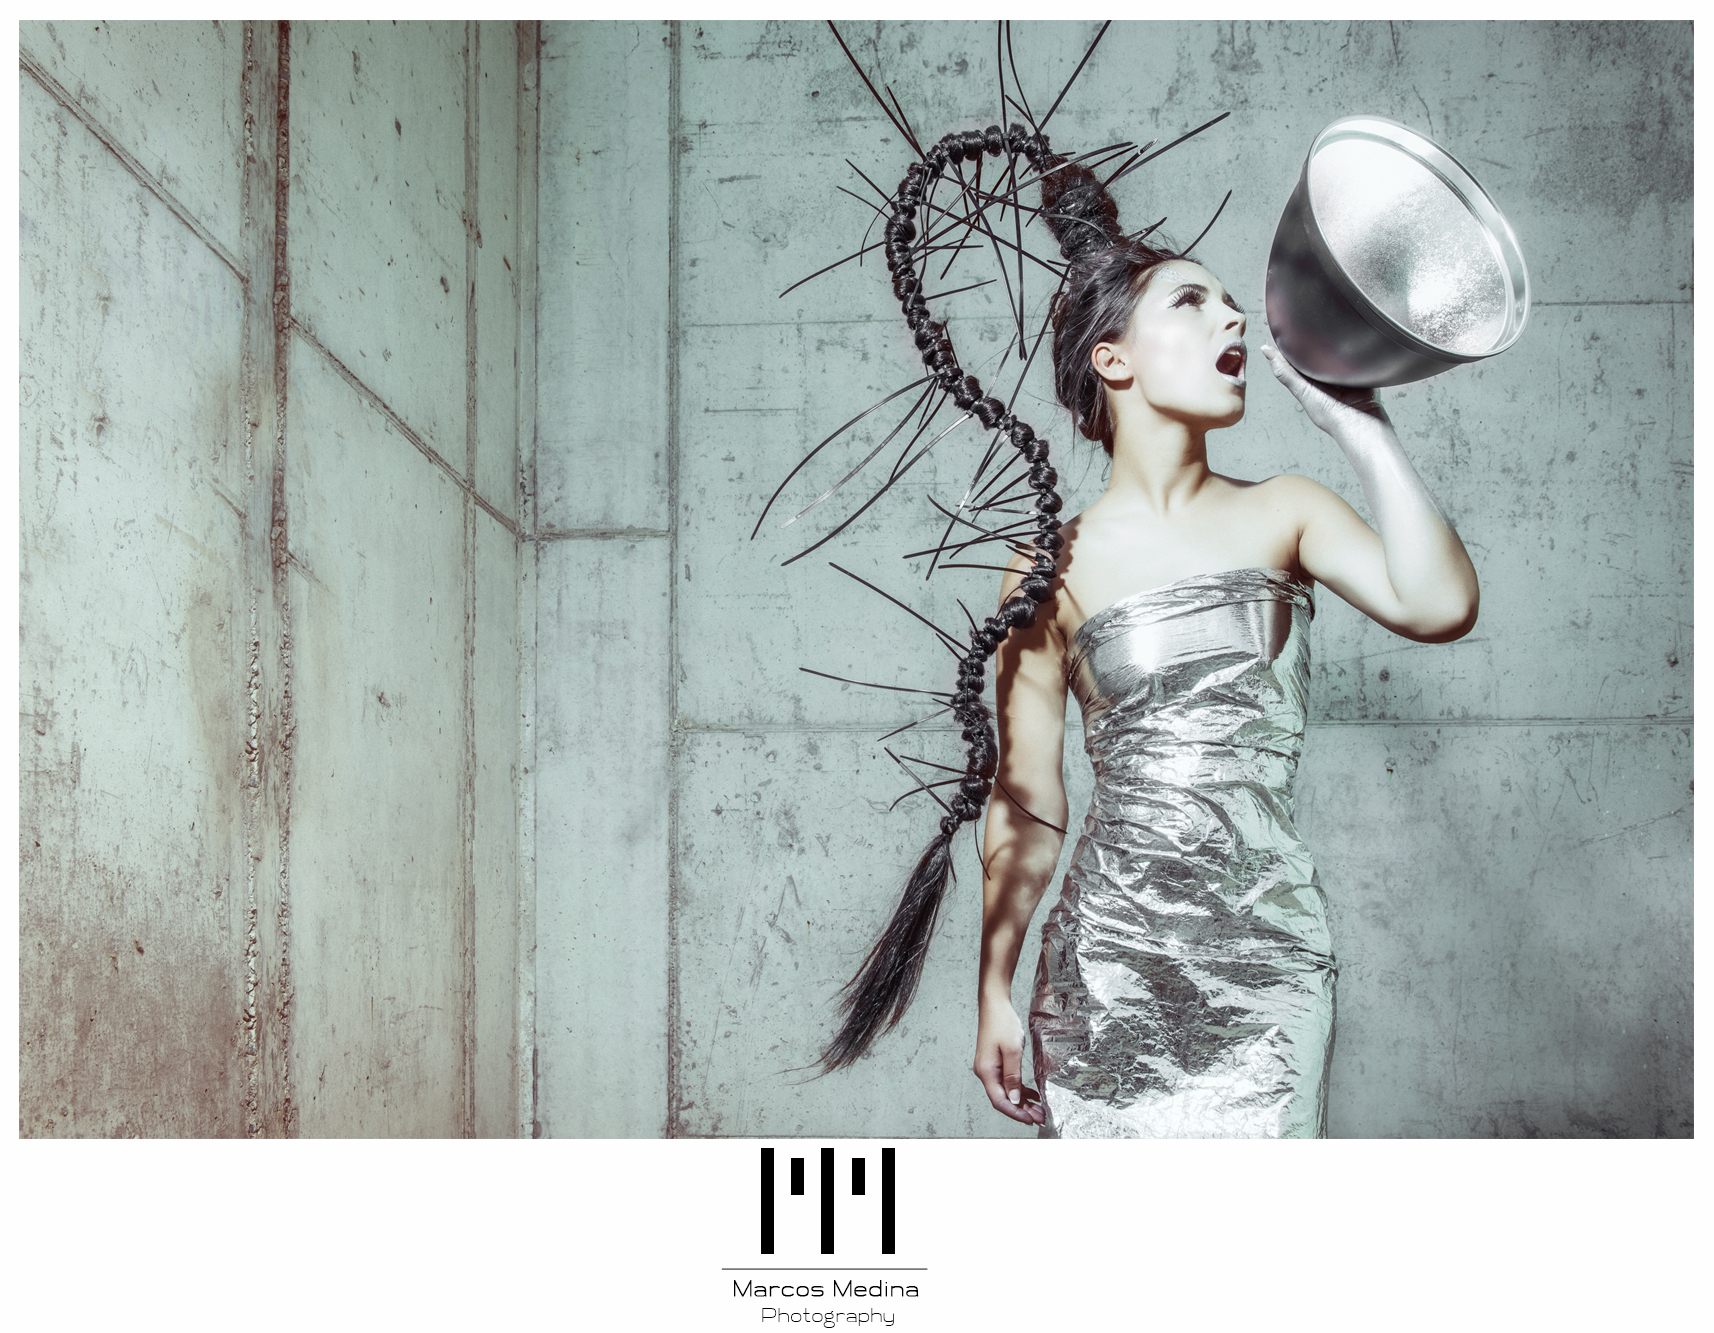 Marcos_Medina_Photography_Fashion_Futurista_7